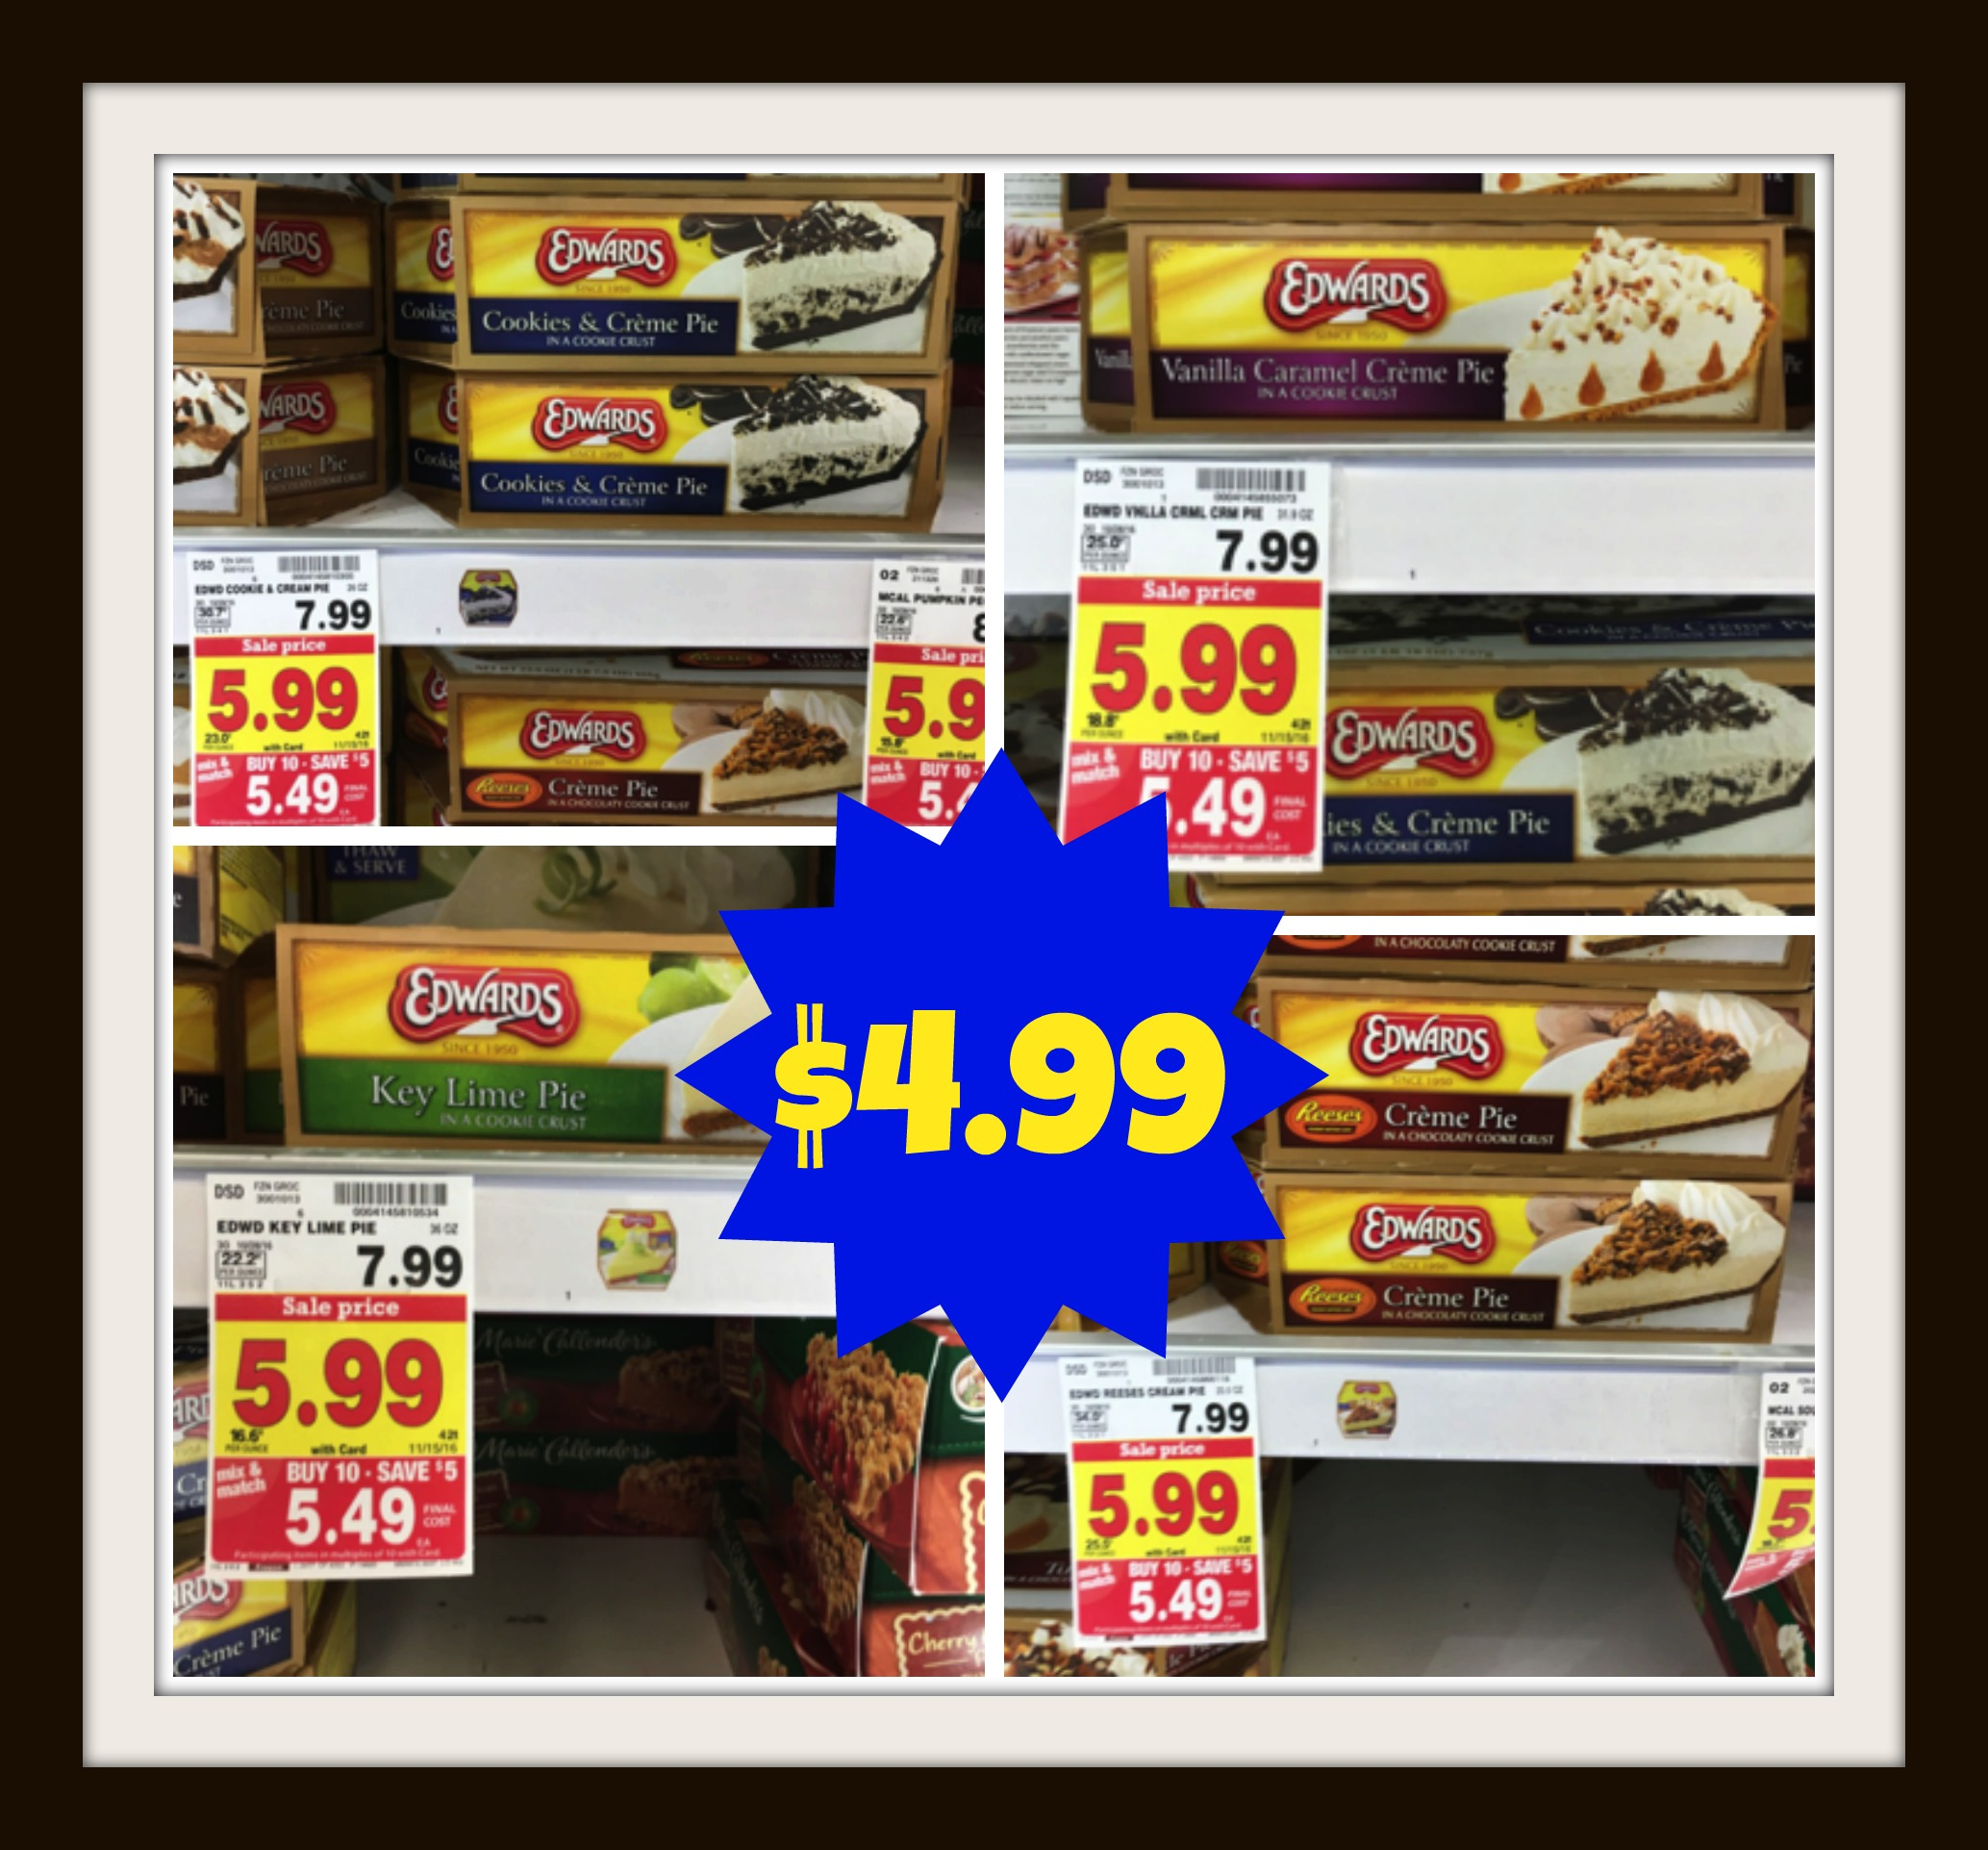 image regarding Edwards Pies Printable Coupons titled Refreshing Edwards Pie Coupon + Kroger Mega Party Bundle Problem